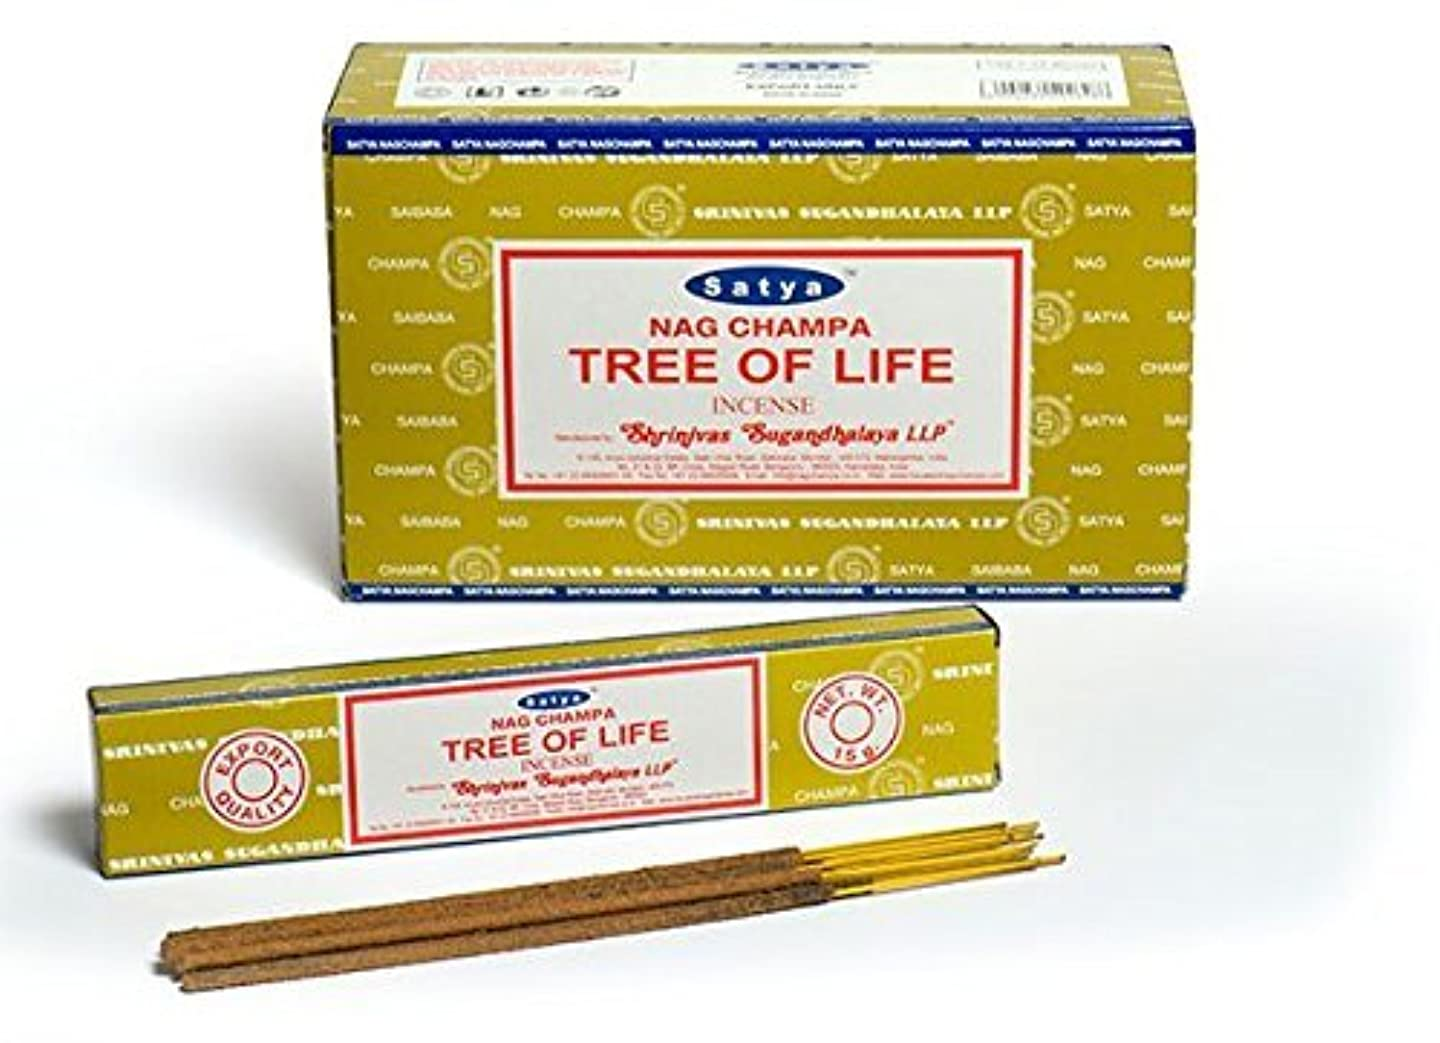 高音運動するスカーフBuycrafty Satya Nag Champa Tree of Life Incense Sticks 180 Grams Box (15g x 12 Boxes)